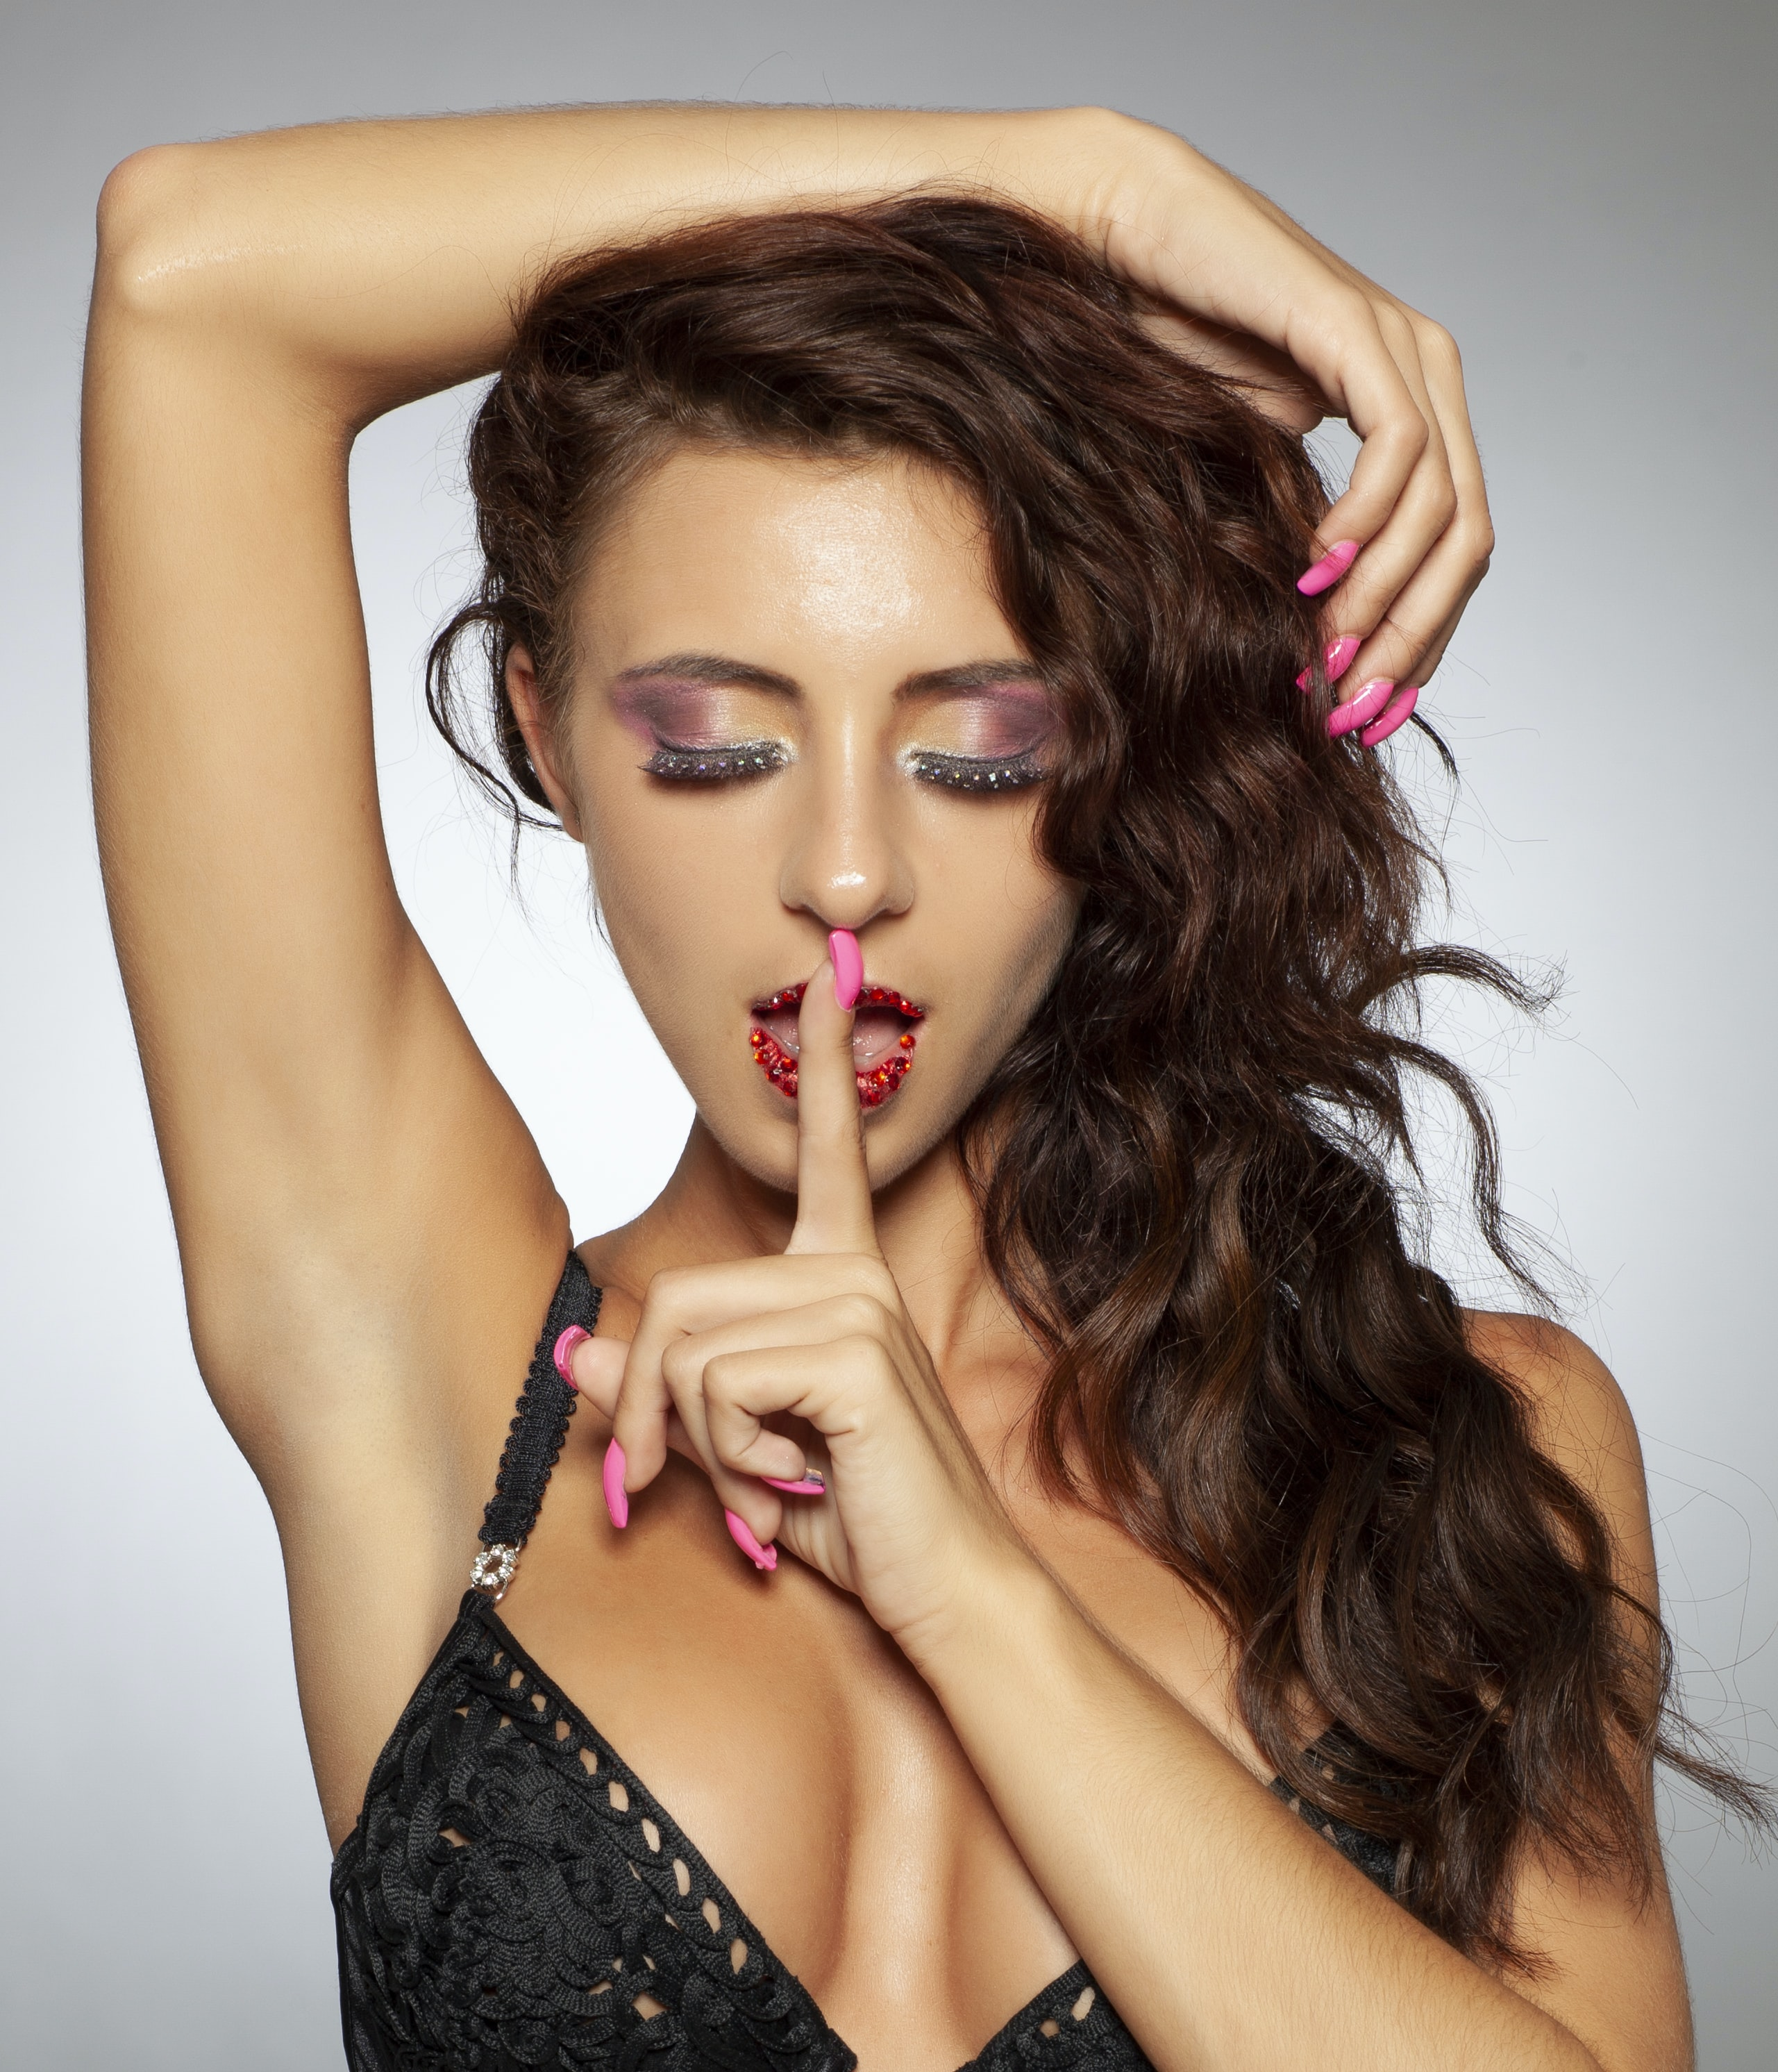 woman wearing black bra place right finger in her open mouth while left hand place on her head